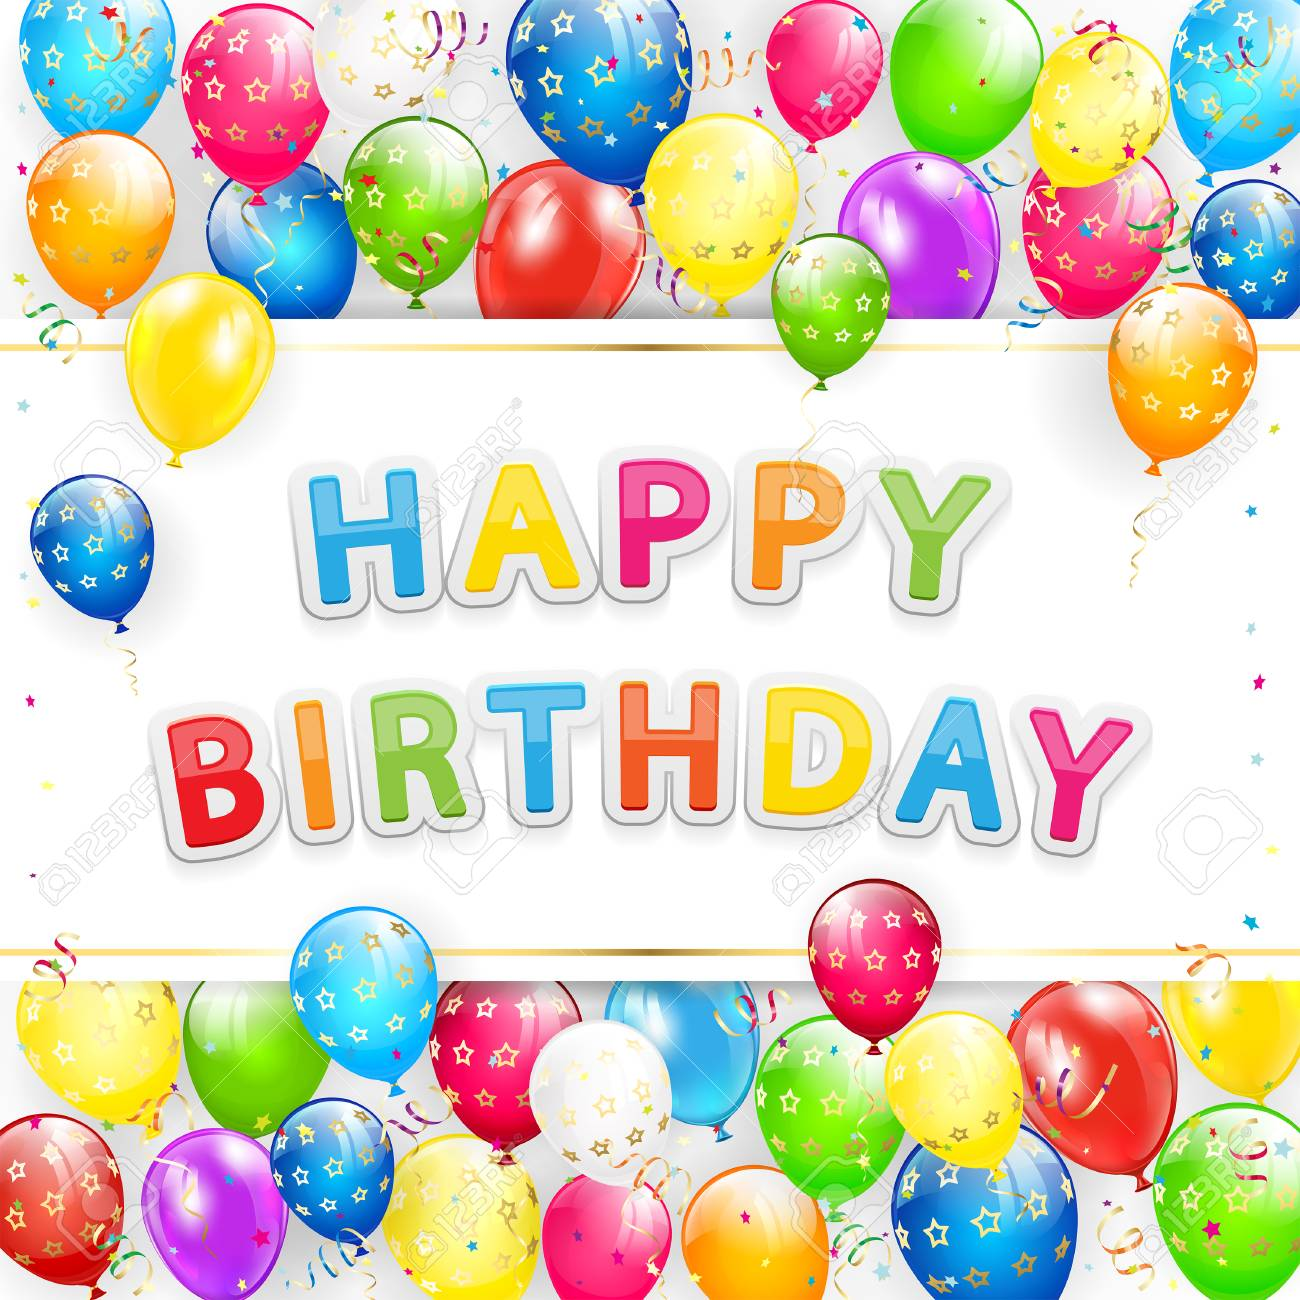 greeting card with lettering happy birthday frame of flying colorful balloons multicolored streamers and